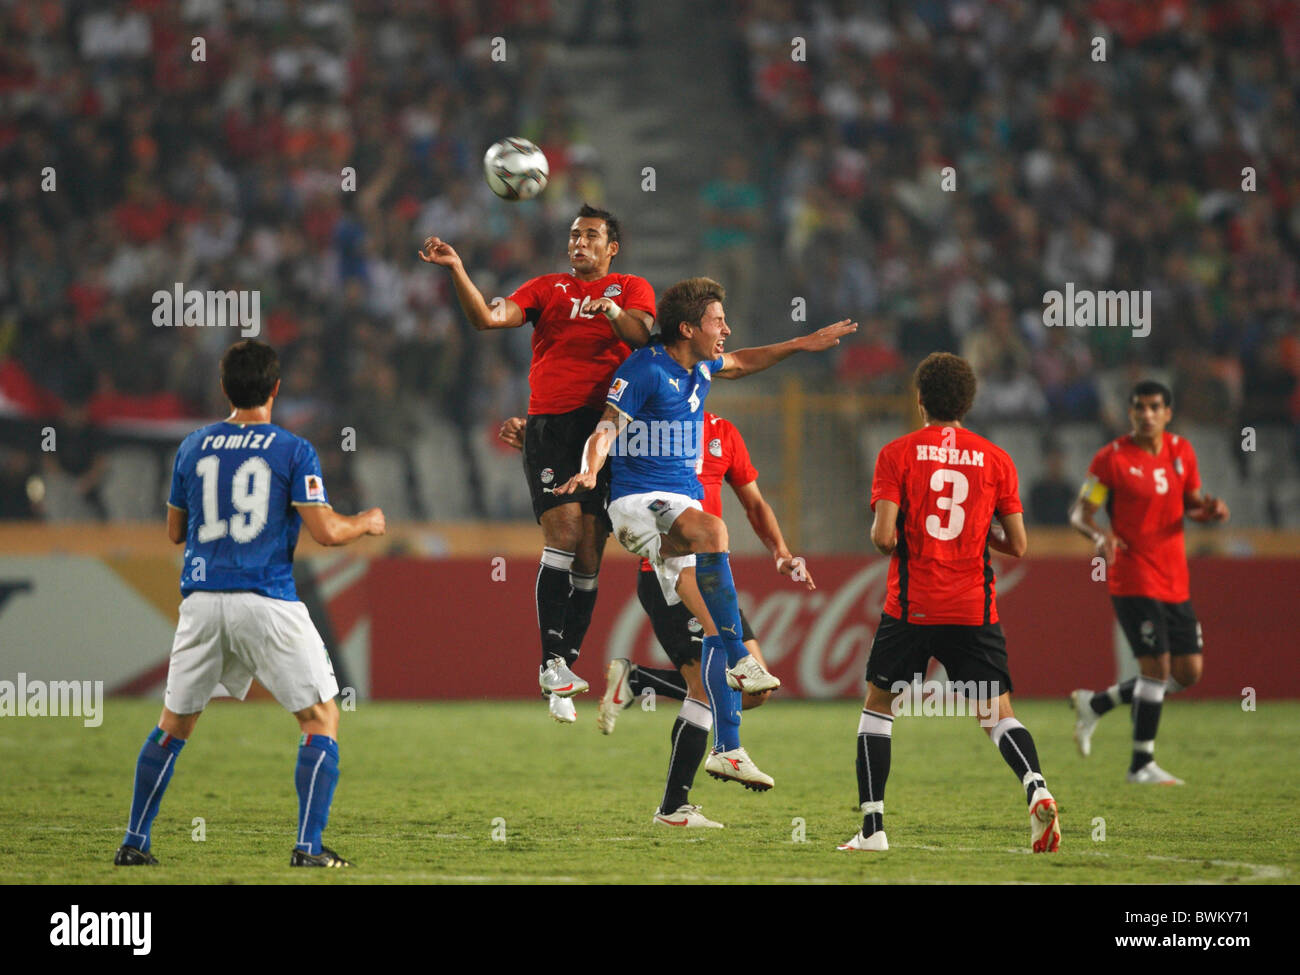 Hosam Hassan of Egypt (l) and Umberto Eusepi of Italy (r) jump for a header during a 2009 FIFA U-20 World Cup Group - Stock Image